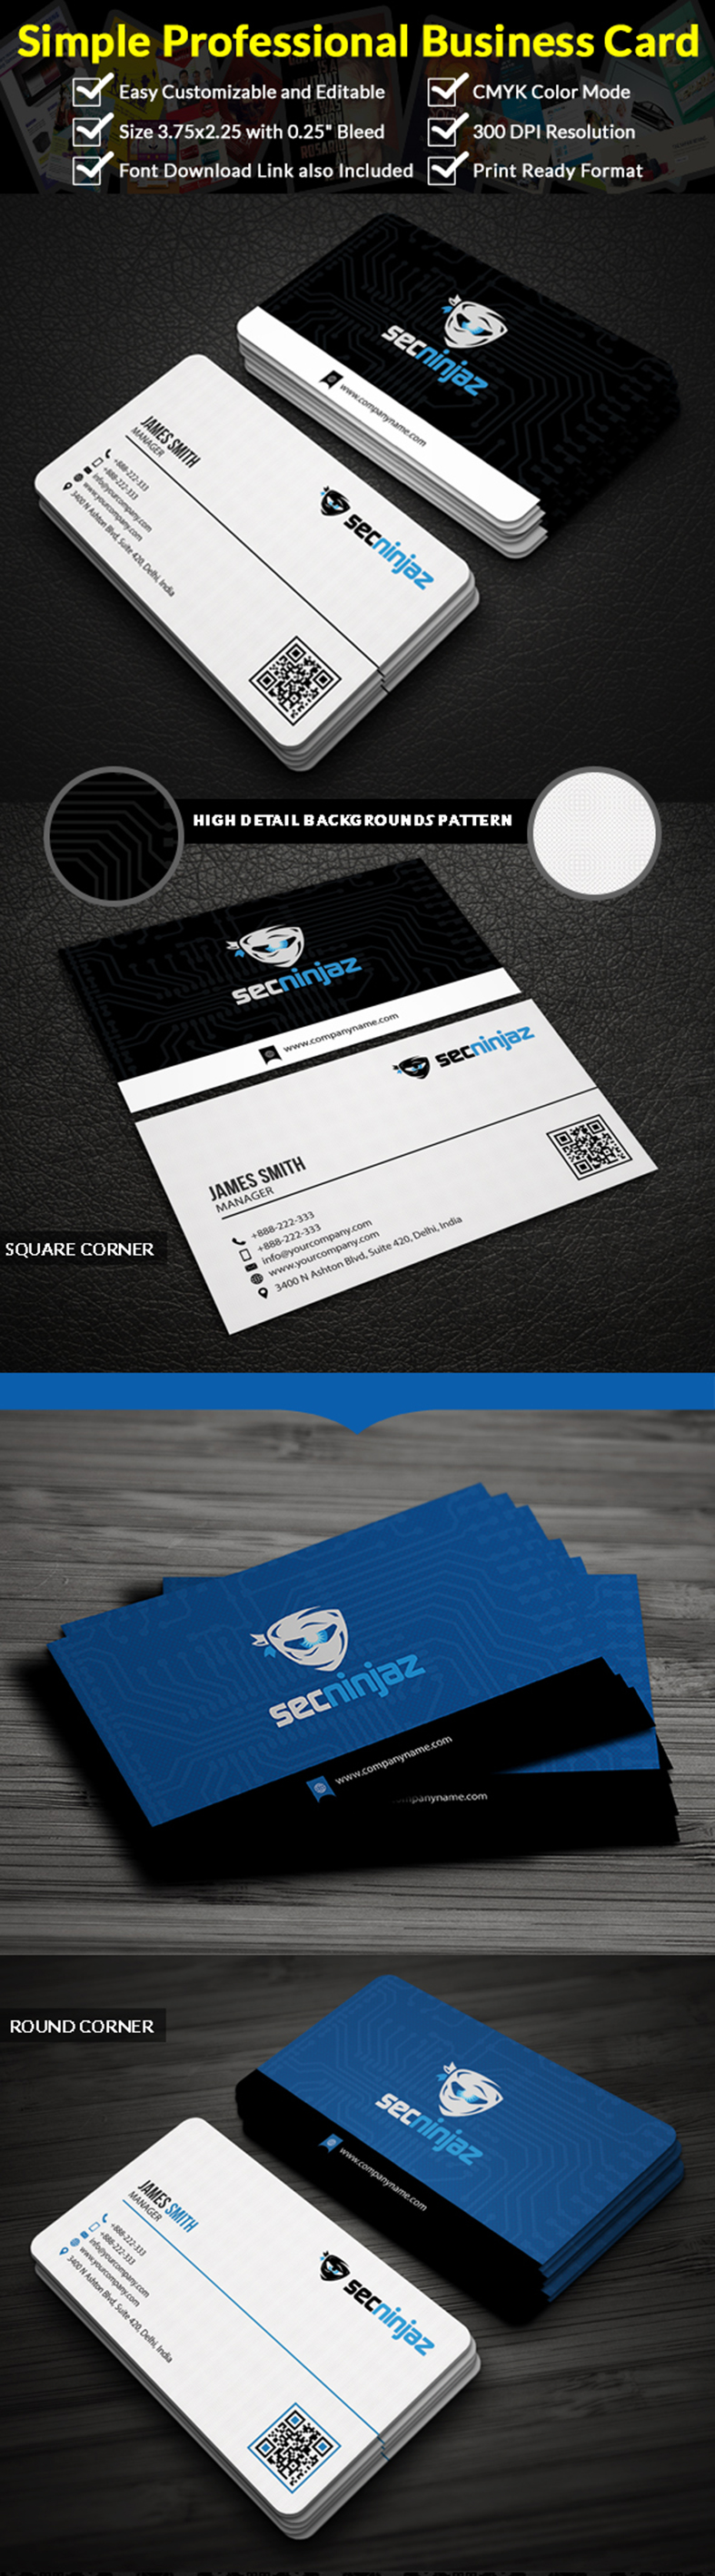 Professional business card business cards business and template professional business card reheart Gallery